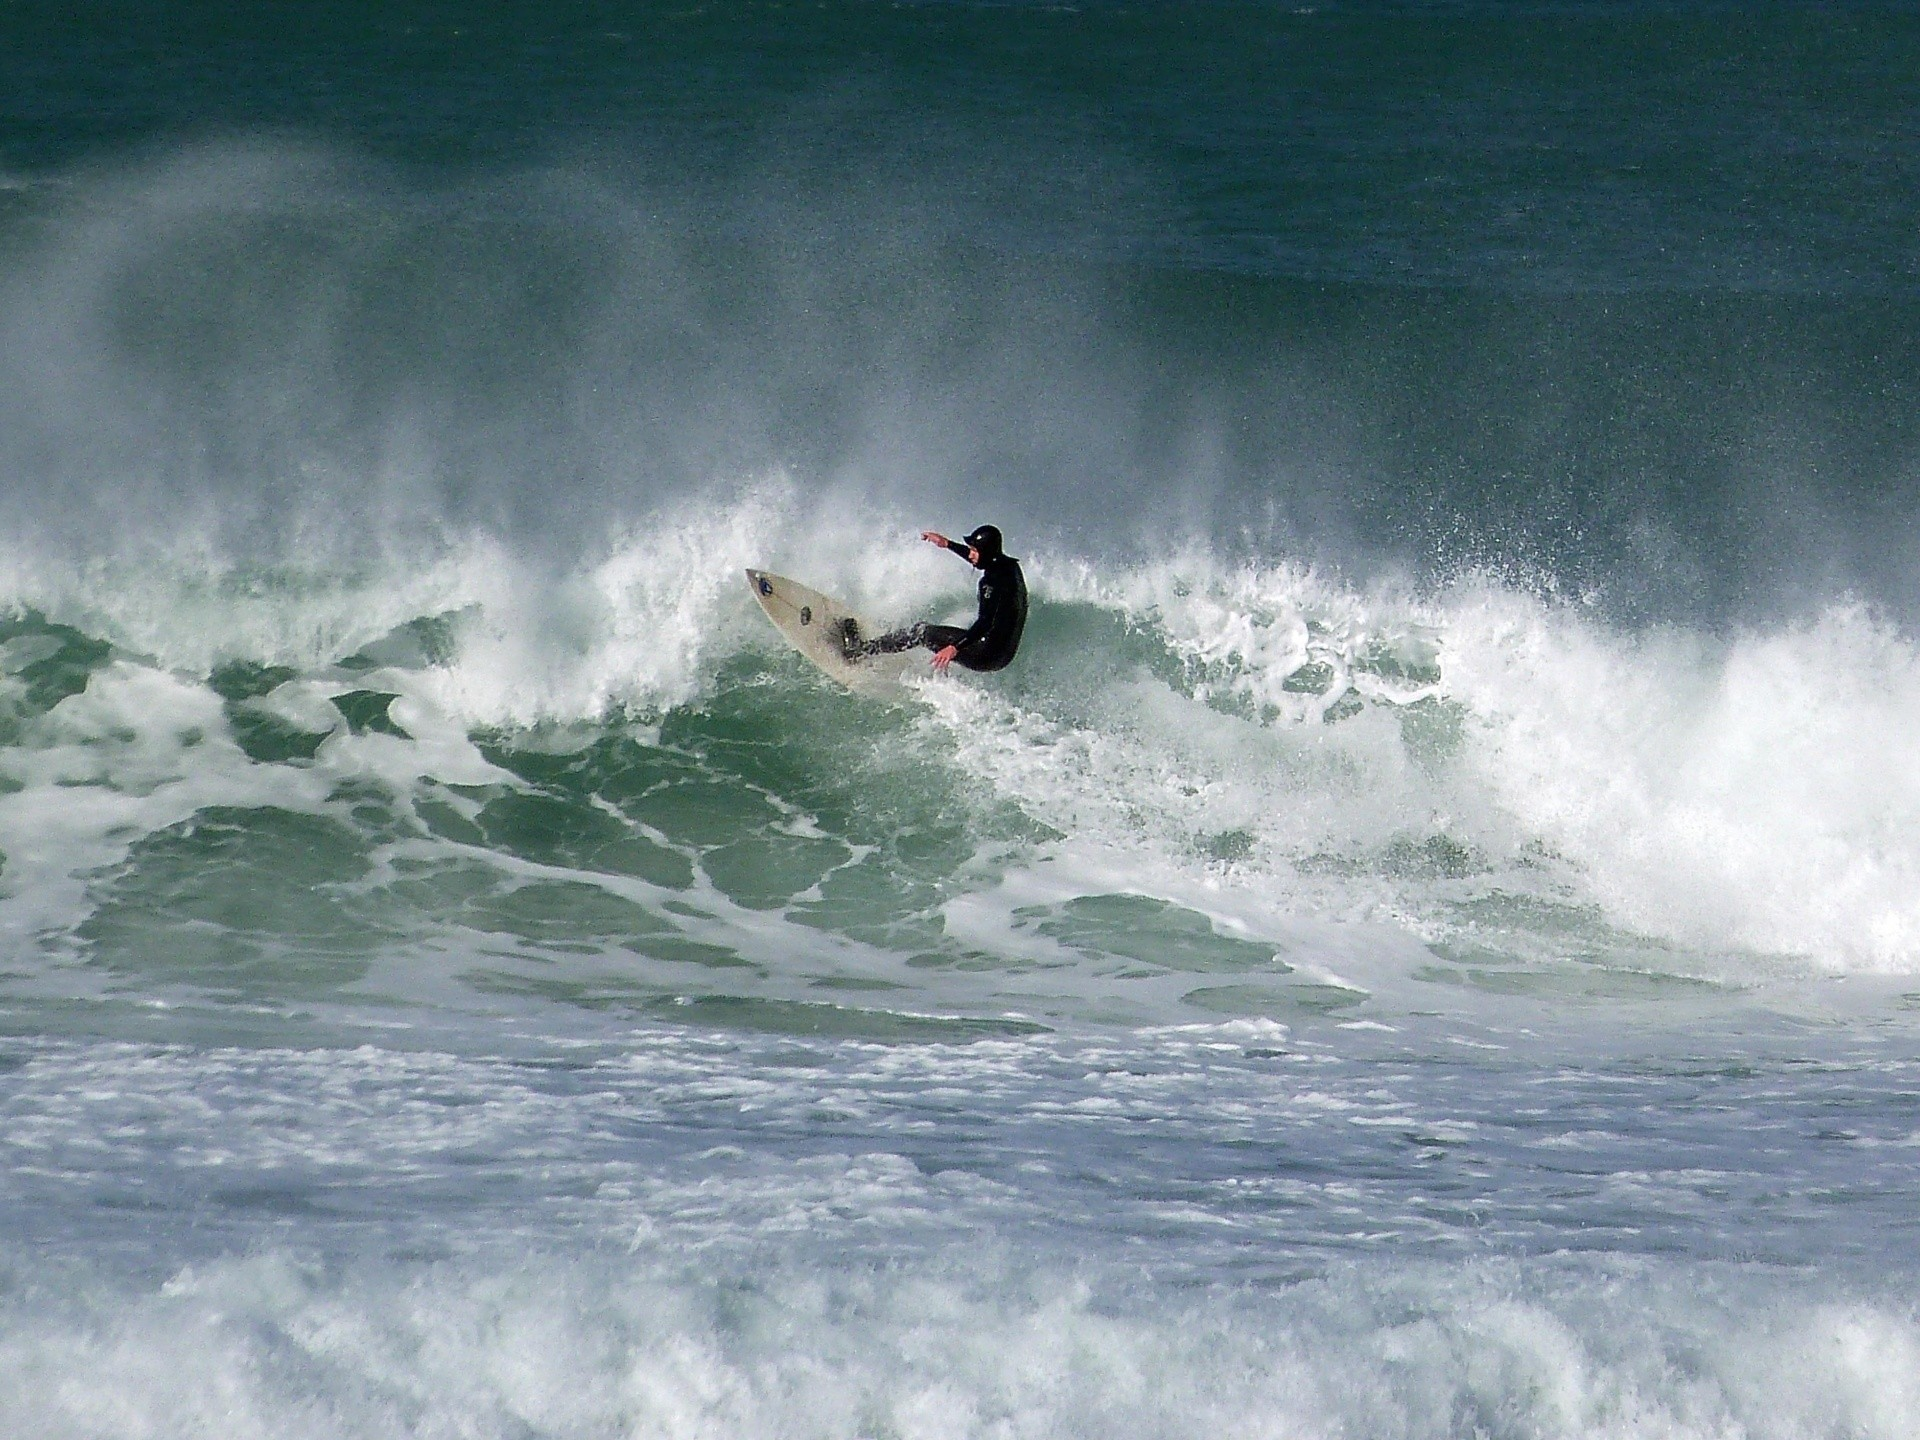 Macfinlay's photo of Porthtowan